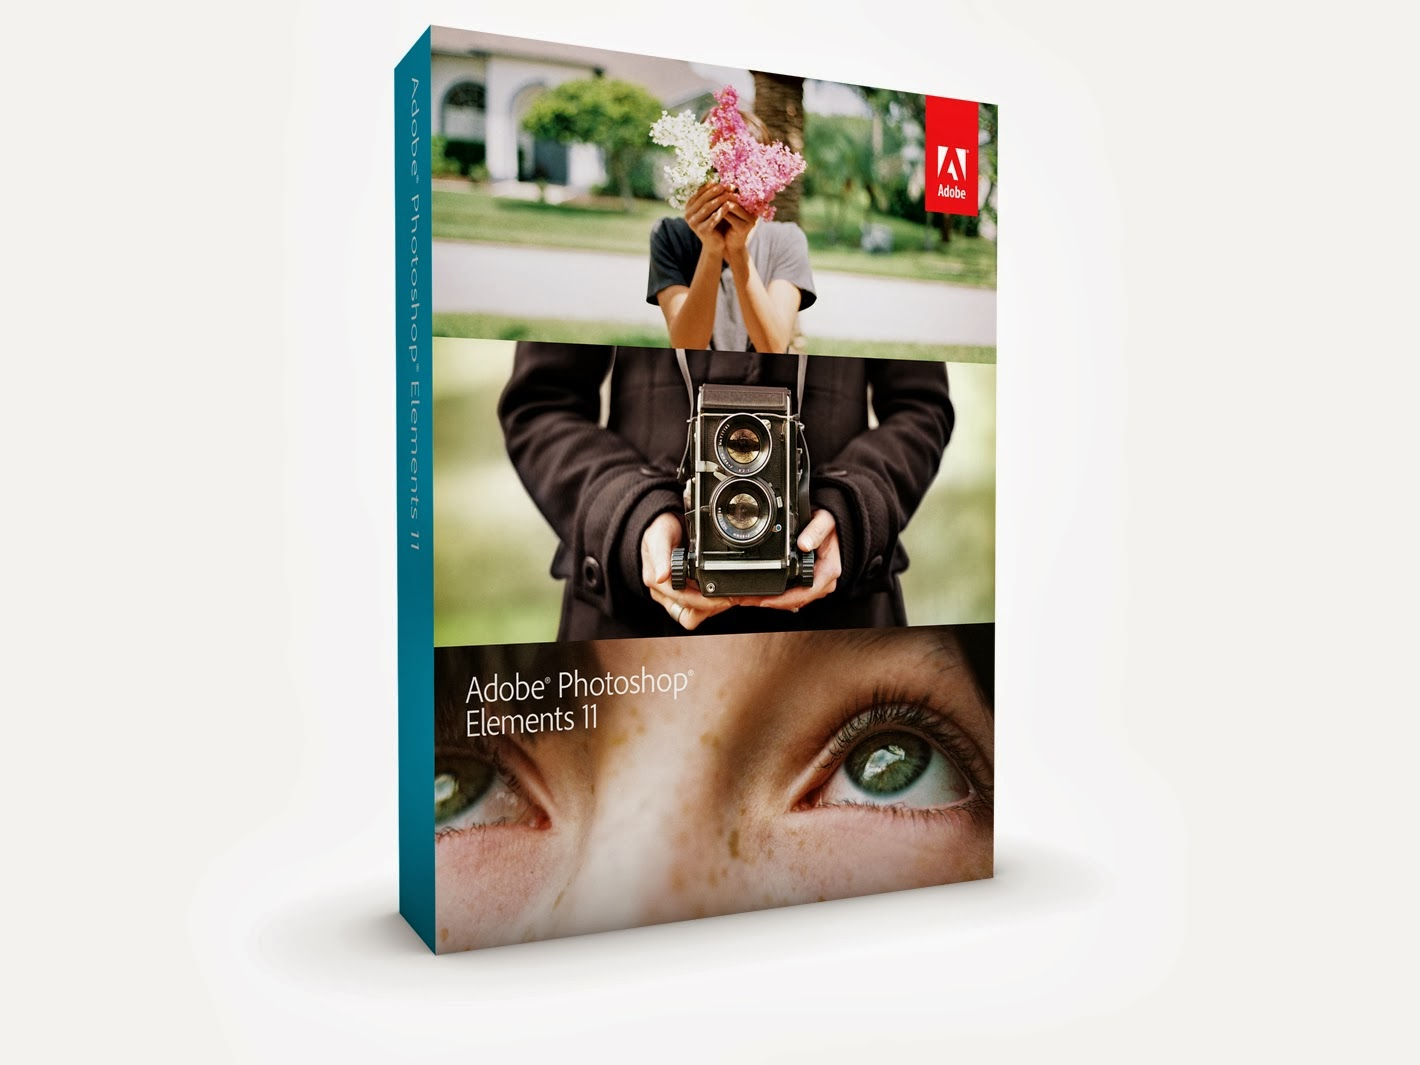 adobe photoshop elements 11 free download full version with crack